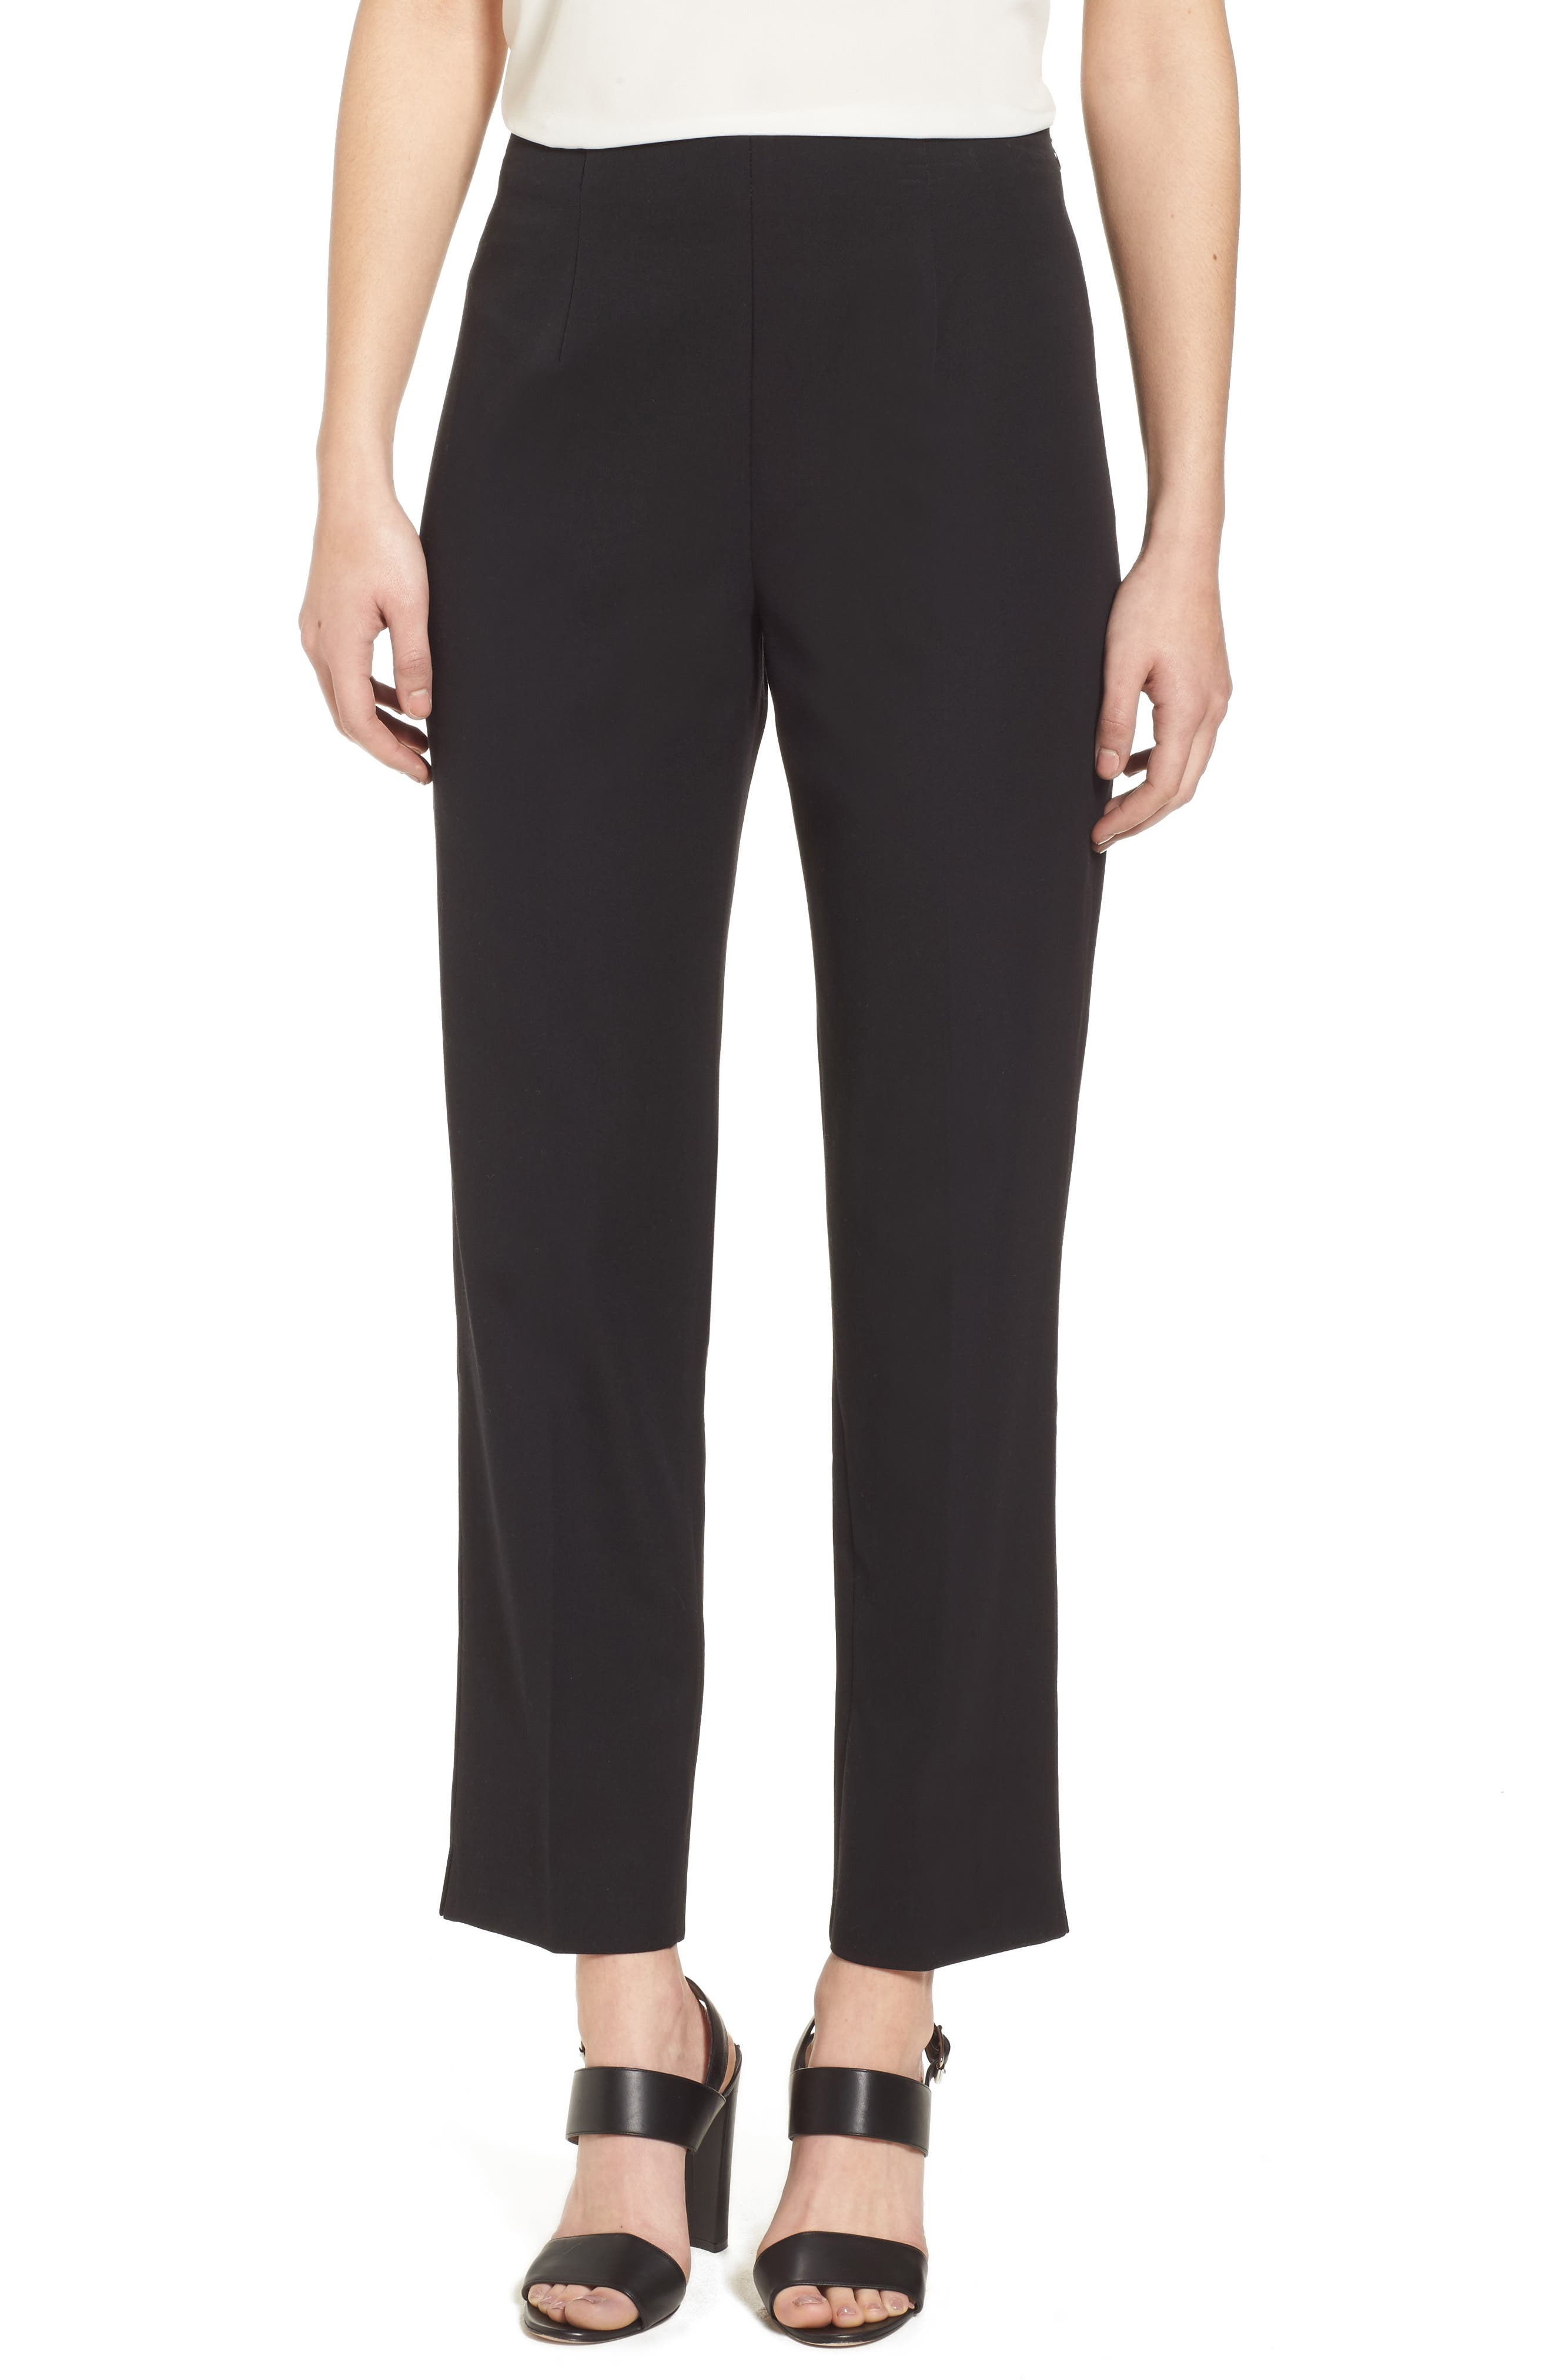 MING WANG, Woven Slim Ankle Pants, Main thumbnail 1, color, BLACK